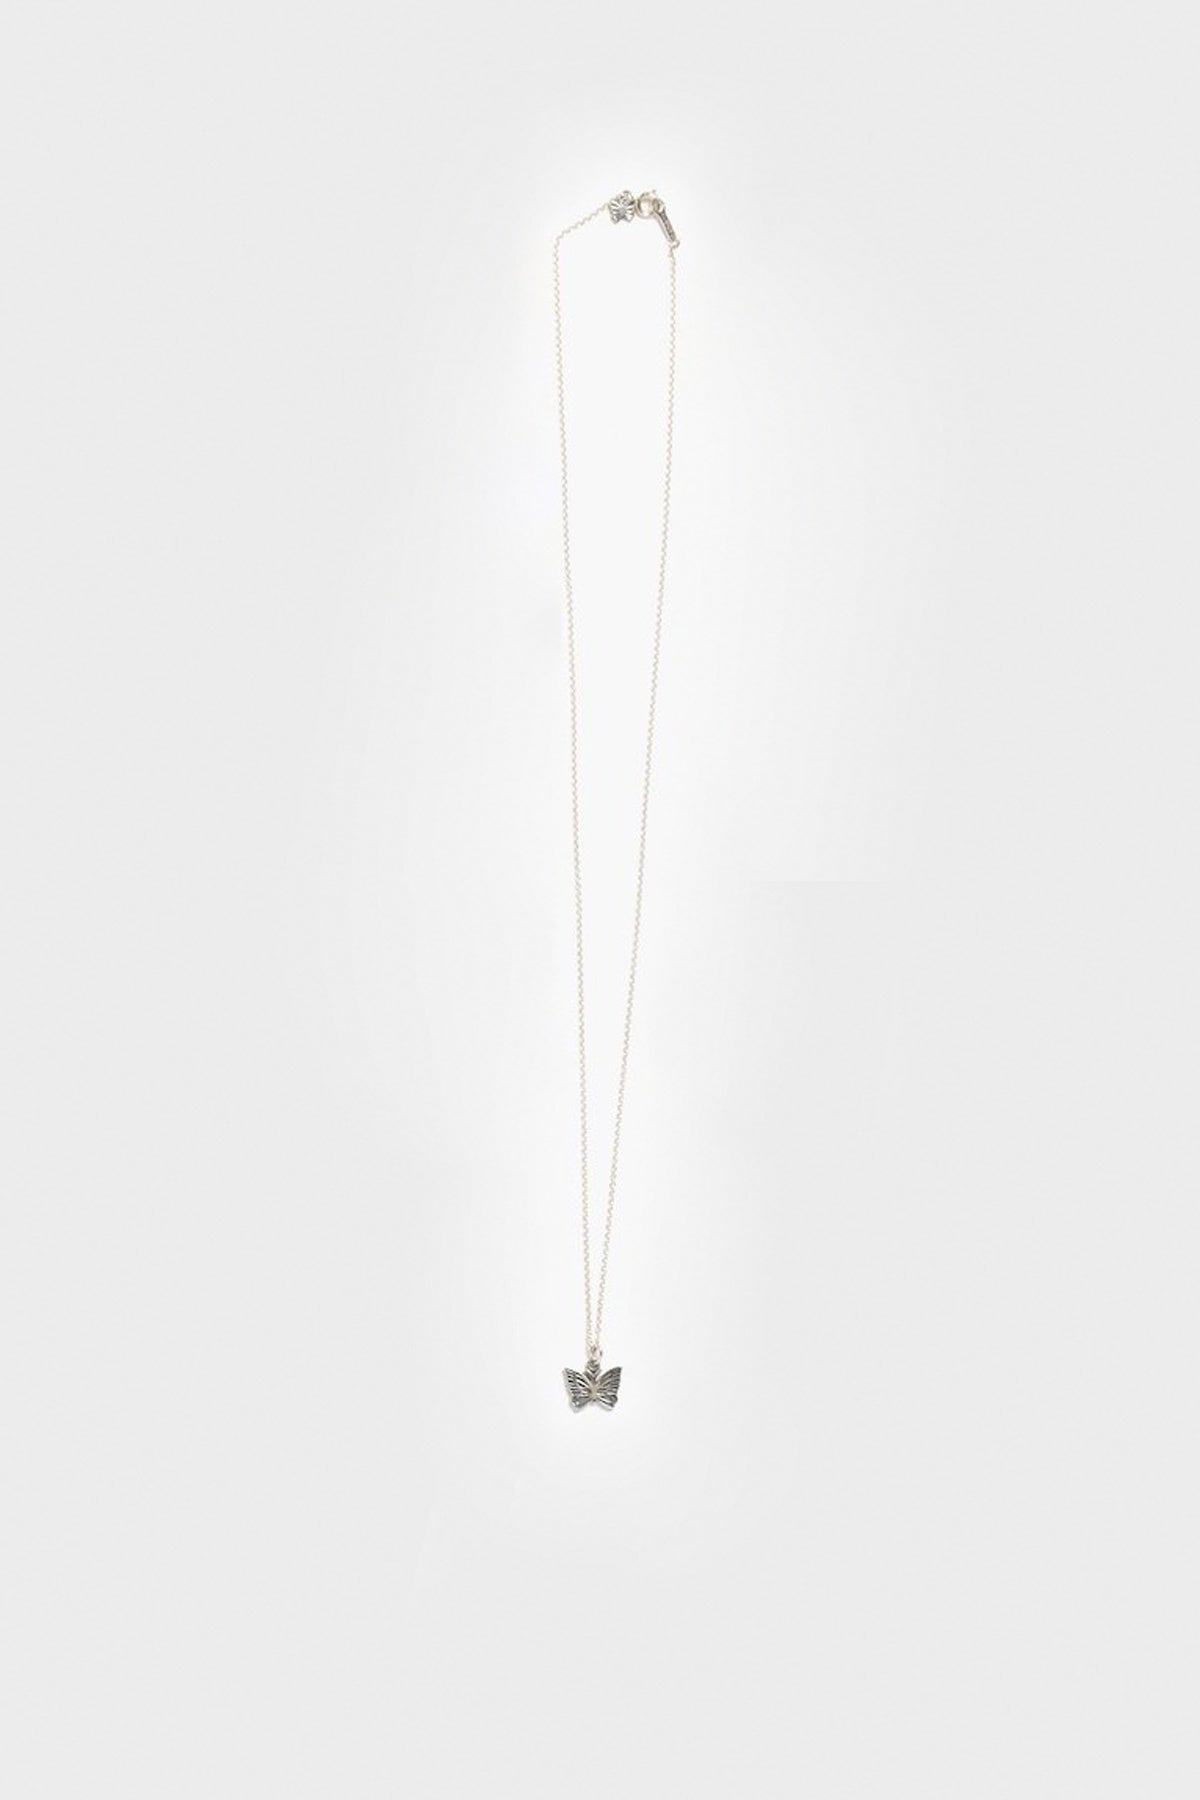 Needles - Needles Pendant in 925 Silver - Papillon - Canoe Club